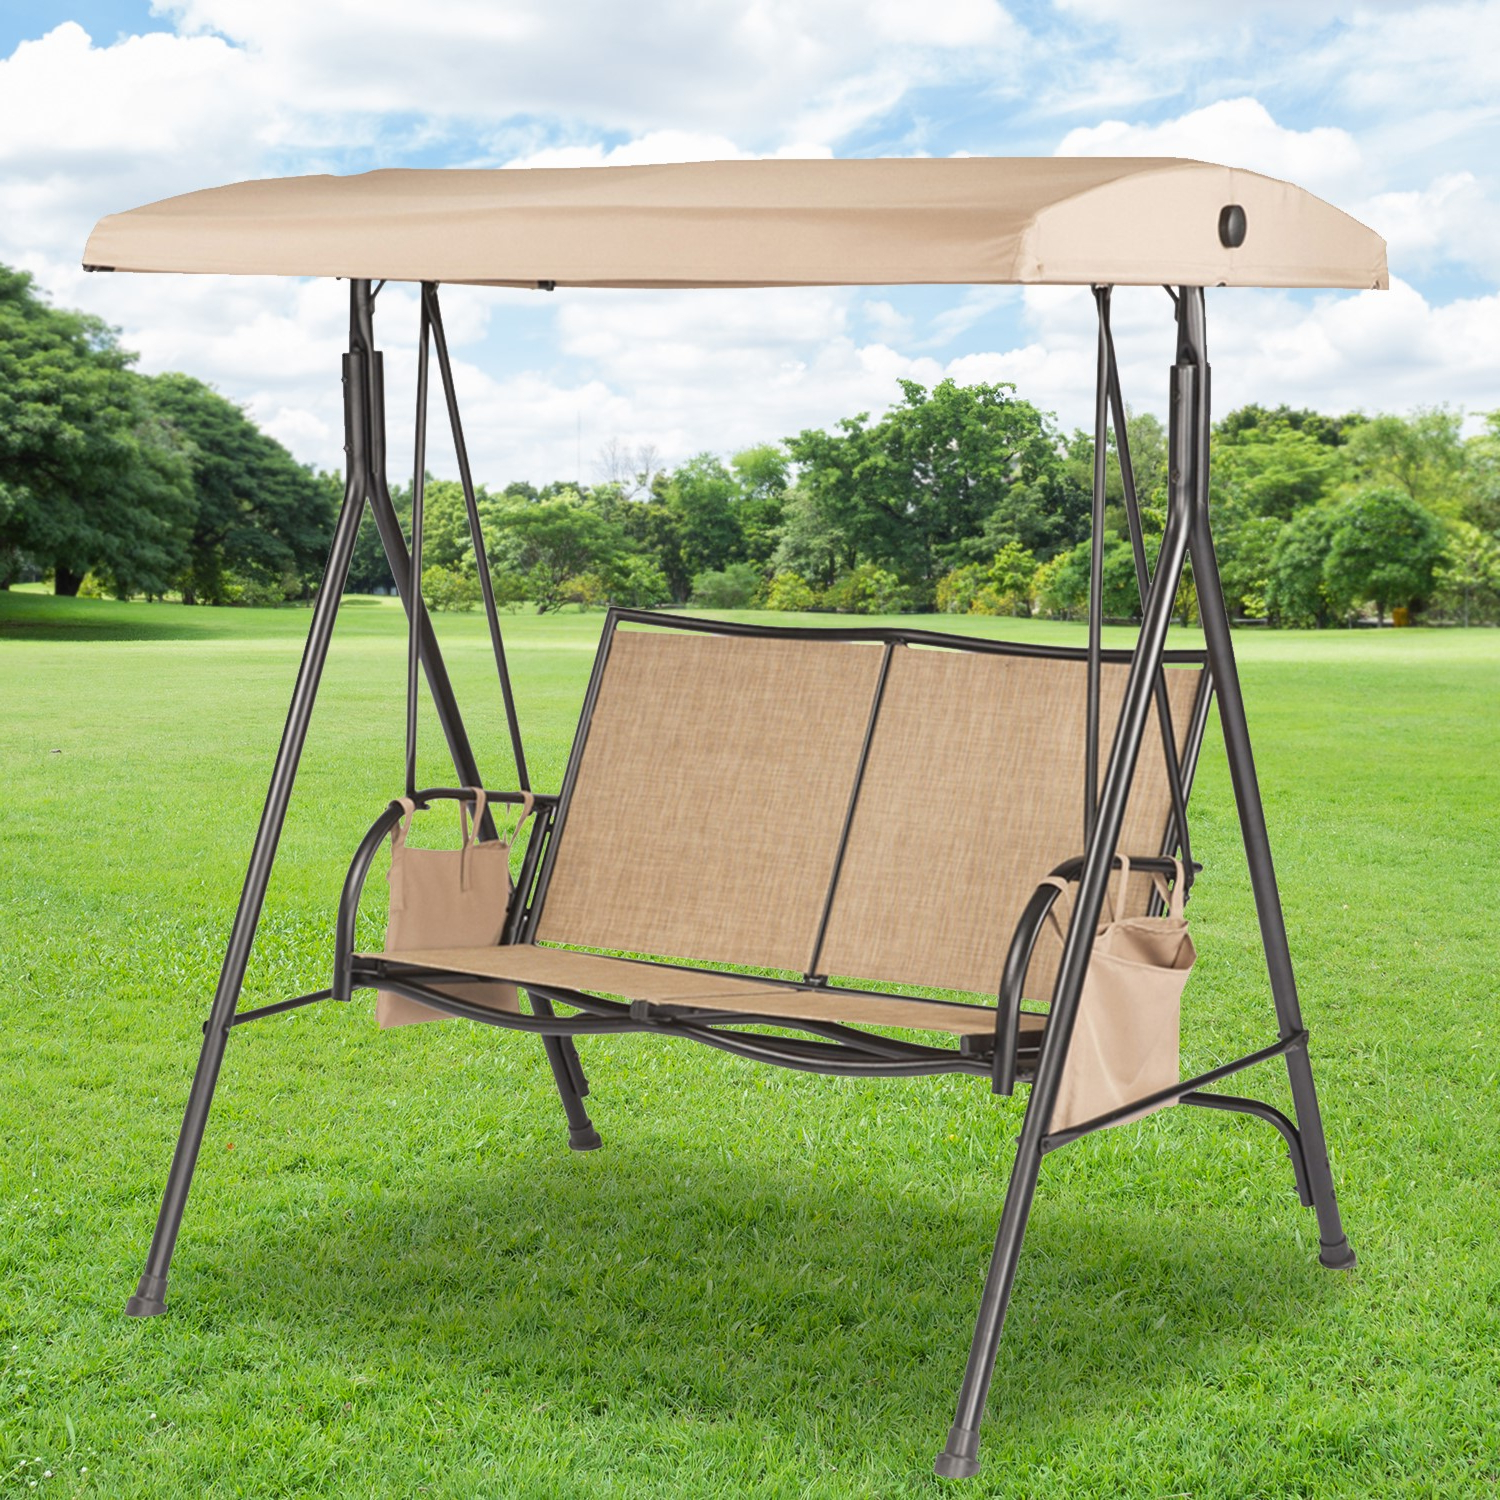 2019 Replacement Swing Canopies For Lowe's Swings – Garden Winds Intended For 2 Person Gray Steel Outdoor Swings (View 15 of 30)